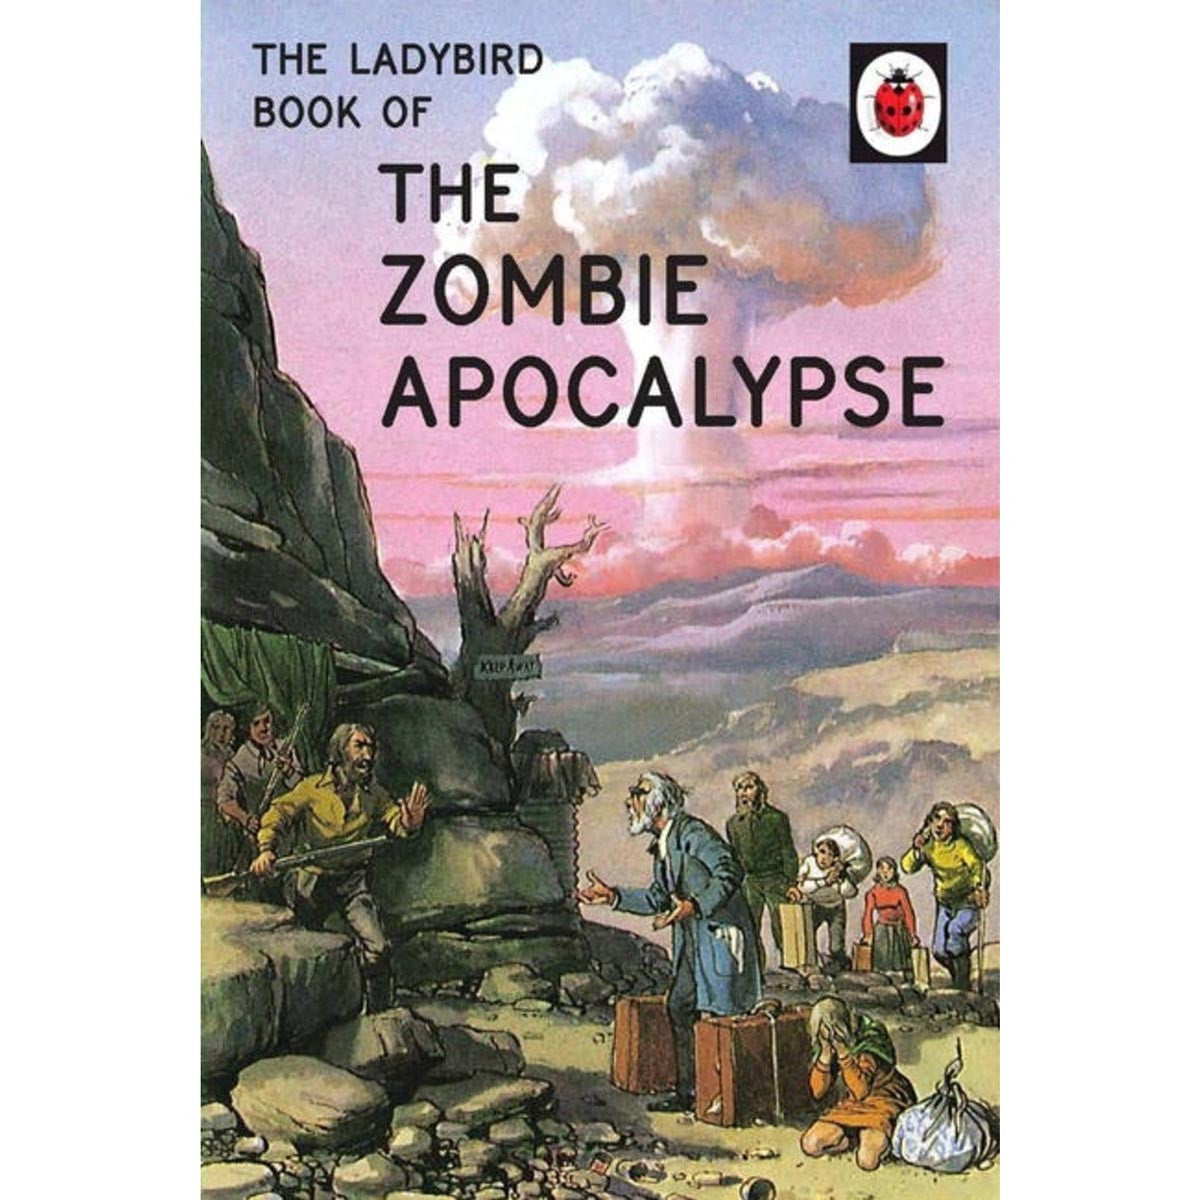 The Ladybird Book of The Zombie Apocalypse-Book-Book Lover Gifts